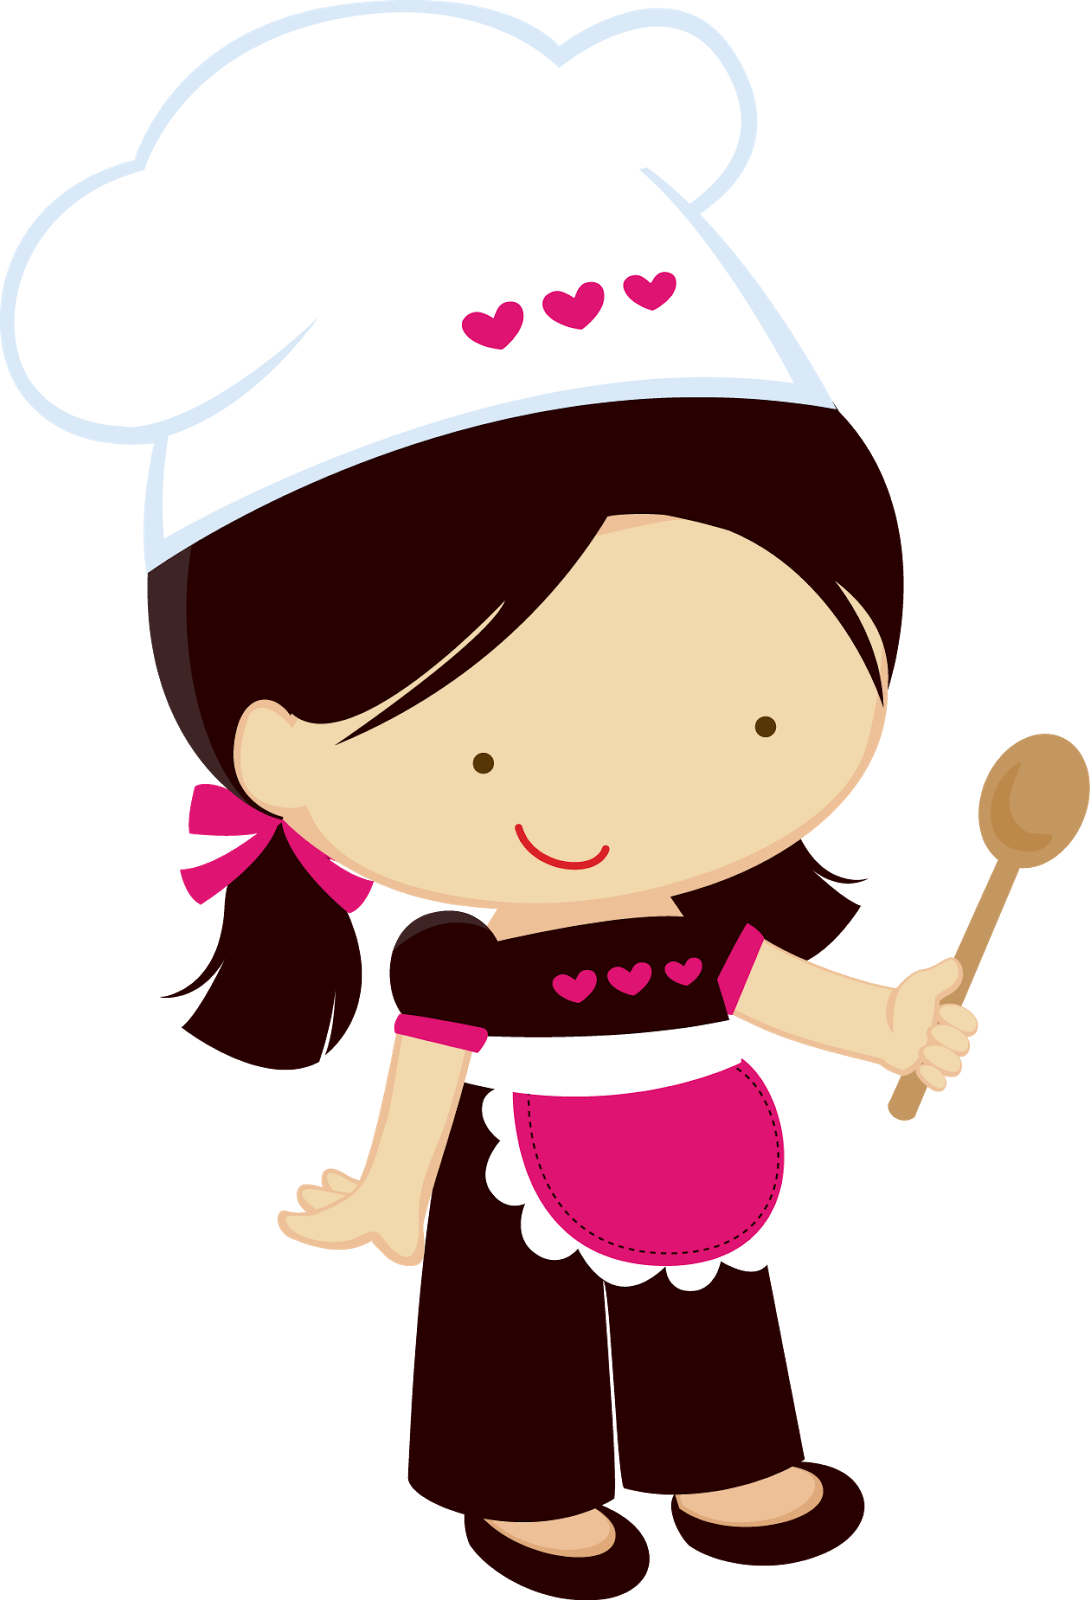 Cute chef woman clipart jpg black and white download Clipart Pequeñas Chefs. | Pequeñas cocineras | Pinterest jpg black and white download